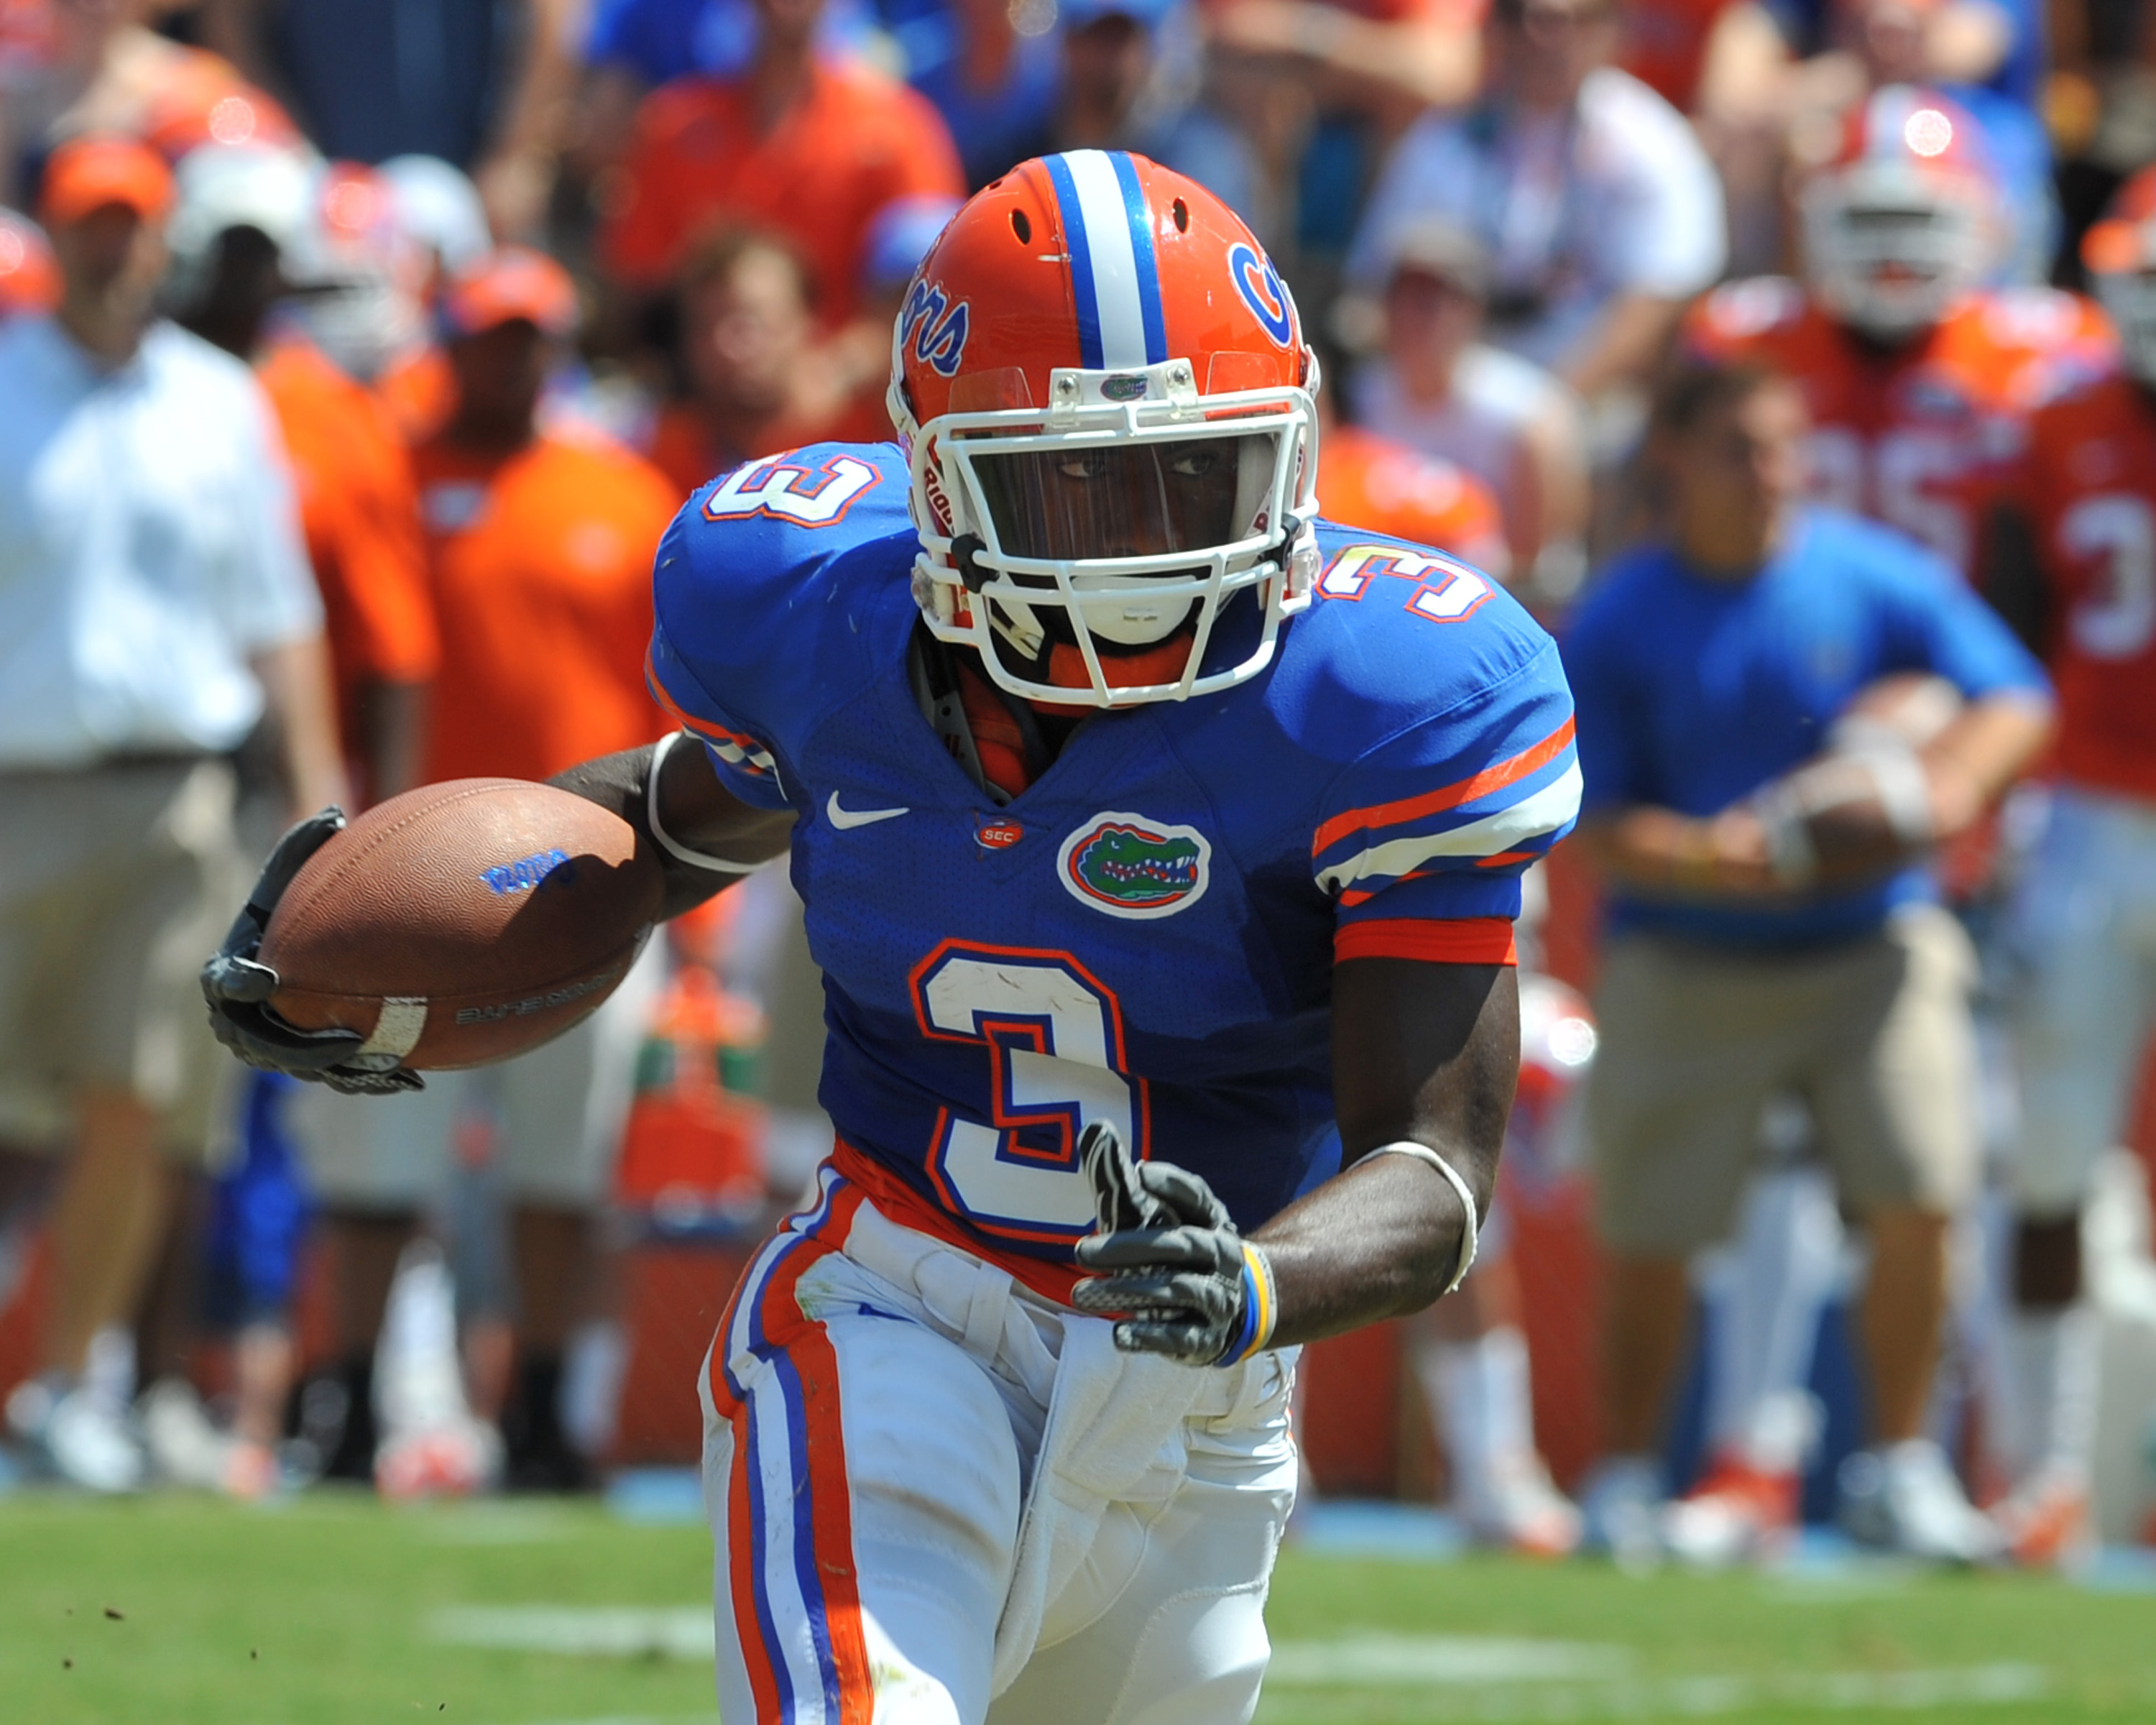 GAINESVILLE, FL - APRIL 9:  Running back Chris Rainey #3 of the Florida Gators runs upfield during the Orange and Blue spring football game April 9, 2011 at Ben Hill Griffin Stadium in Gainesville, Florida.  (Photo by Al Messerschmidt/Getty Images)